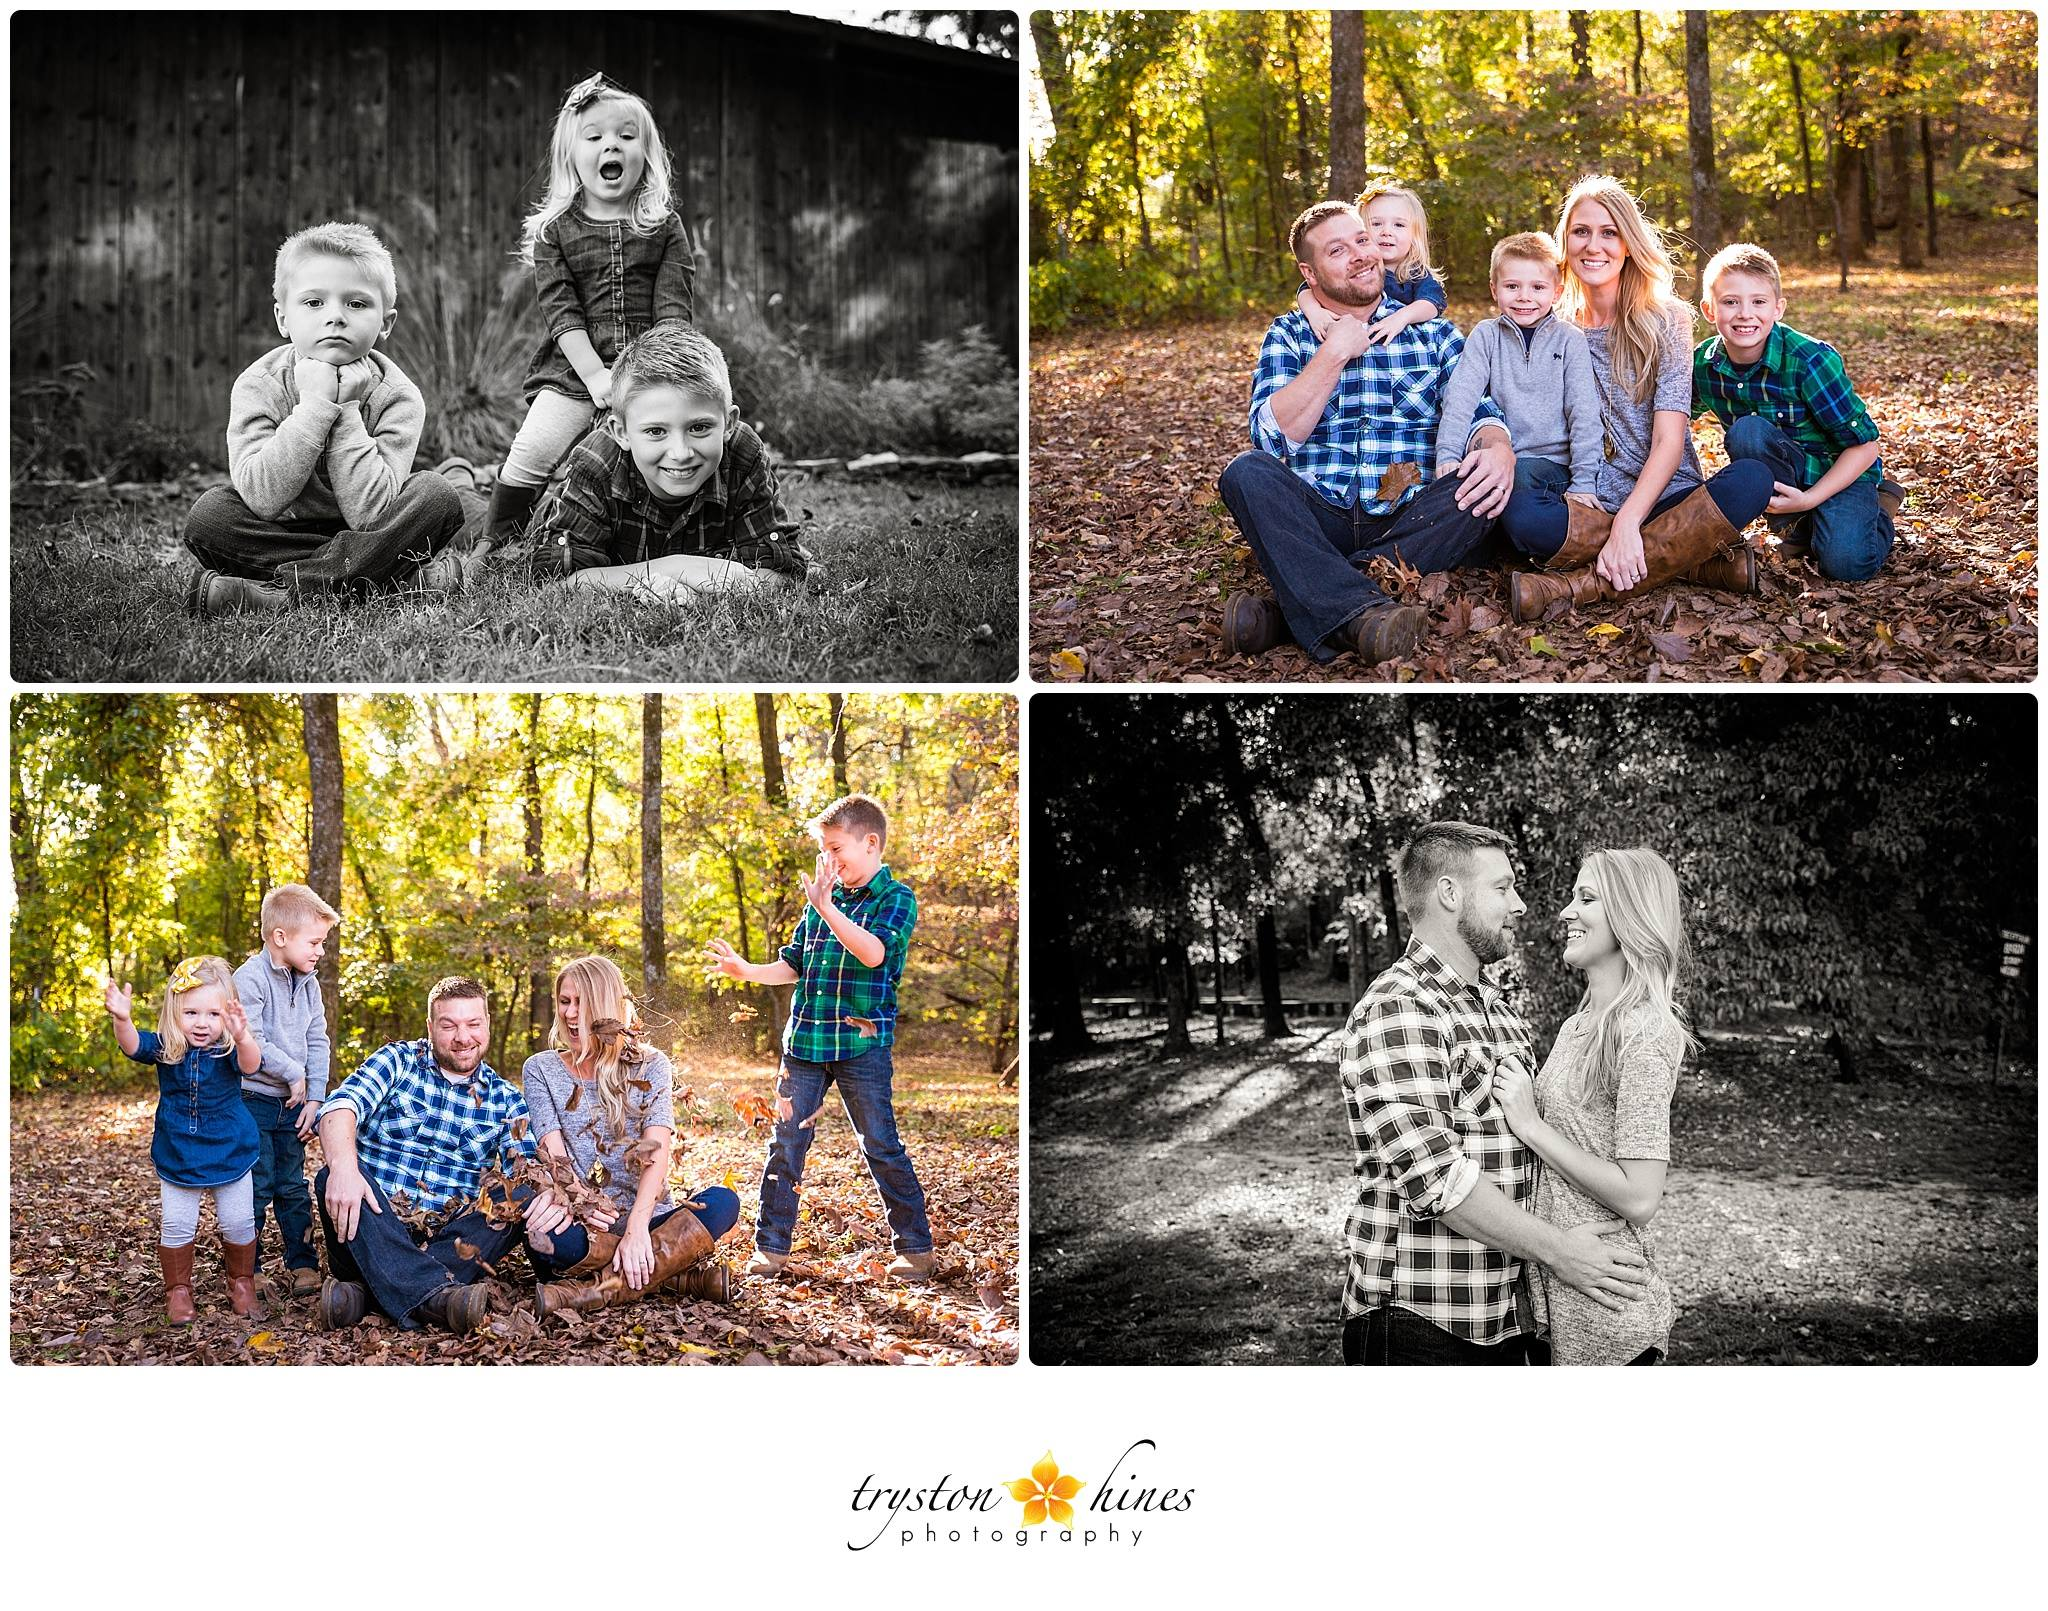 Tryston Hines Photography , from the Freeman family session